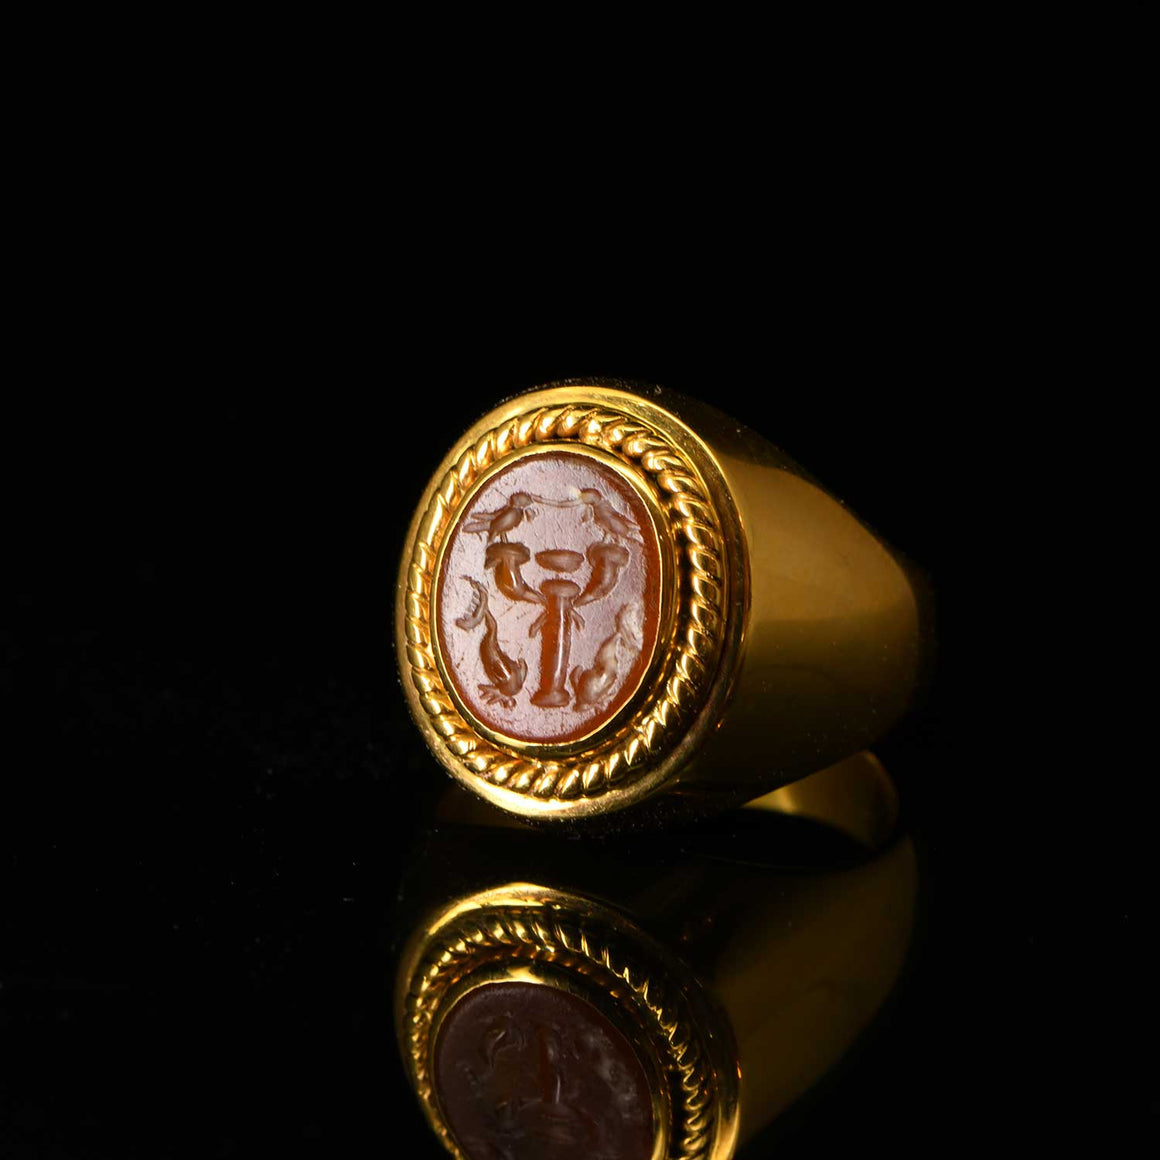 * A Roman carnelian ringstone intaglio, ca 1st century CE - Sands of Time Ancient Art